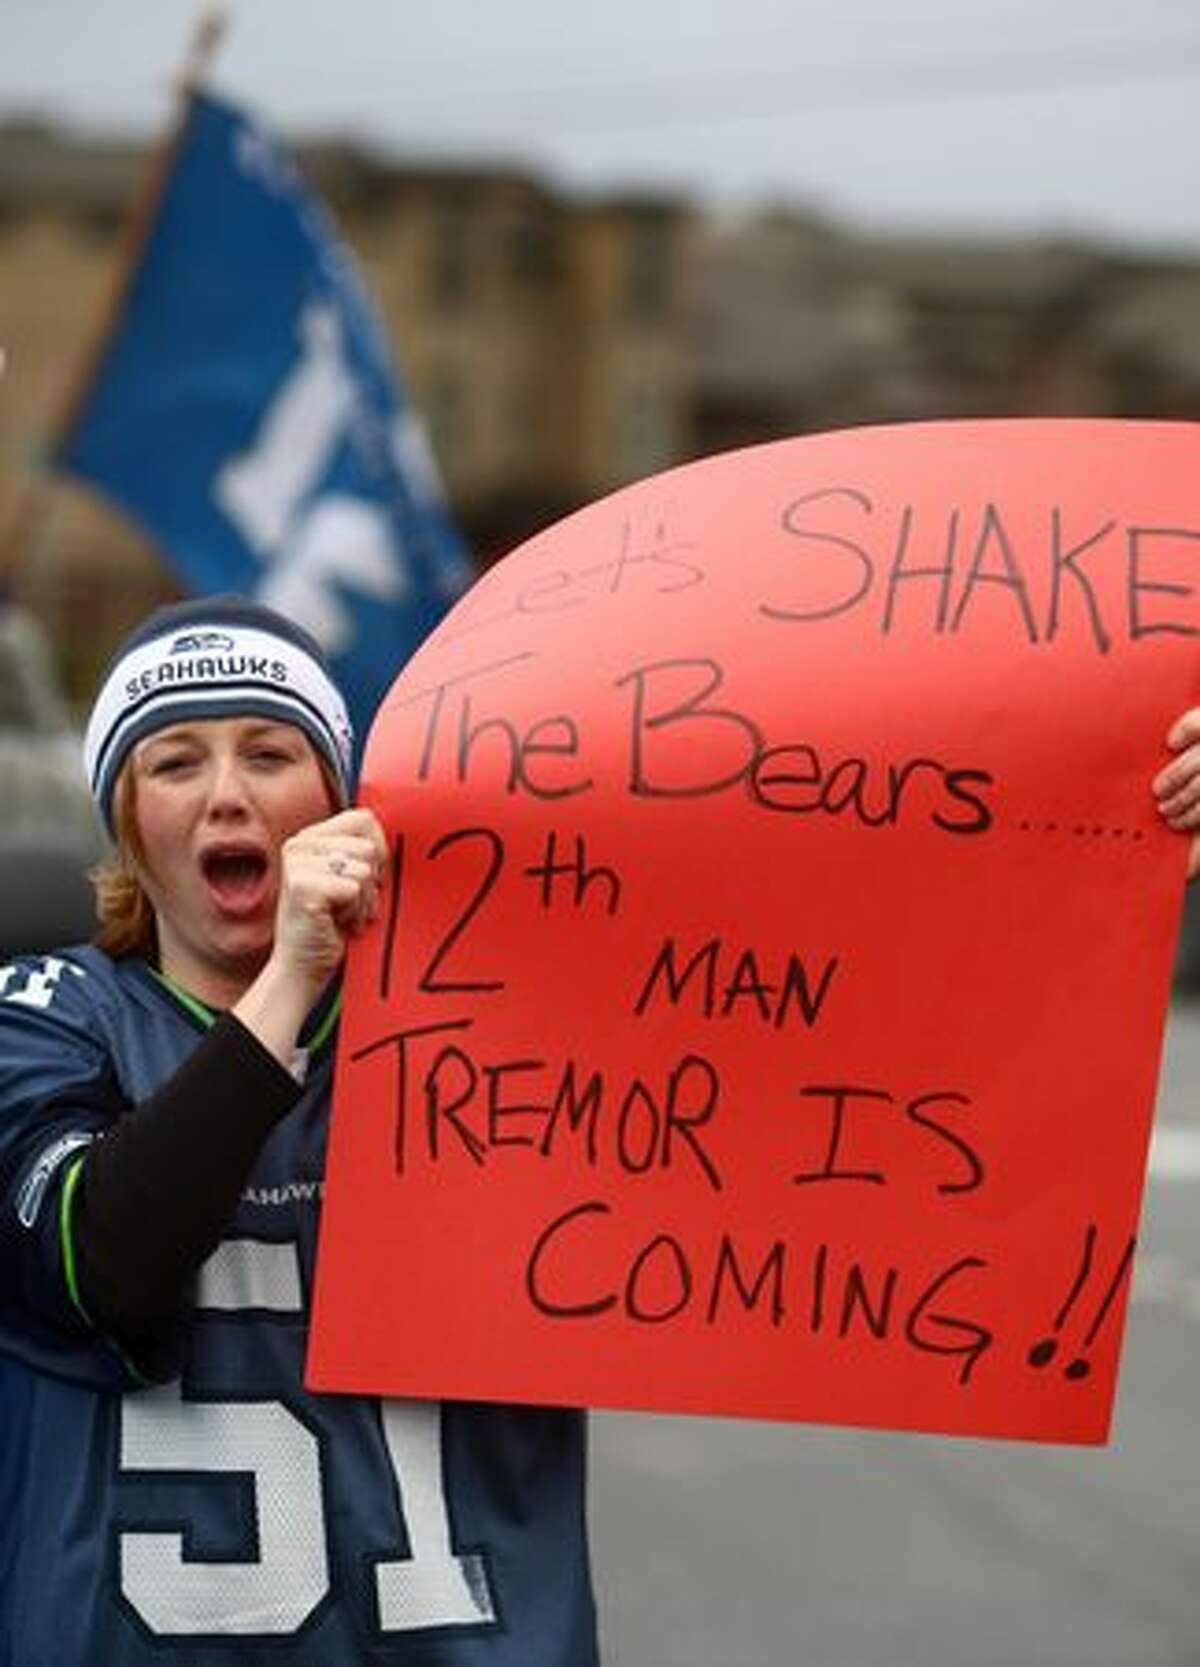 Alicia Brender holds a sign as Seattle Seahawks team busses drive past during a fan sendoff for the team on Friday, Jan. 14, 2011 near the Virginia Mason Athletic Facility in Renton. The Seahawks are scheduled to play the Chicago Bears Sunday in an NFL playoff game.